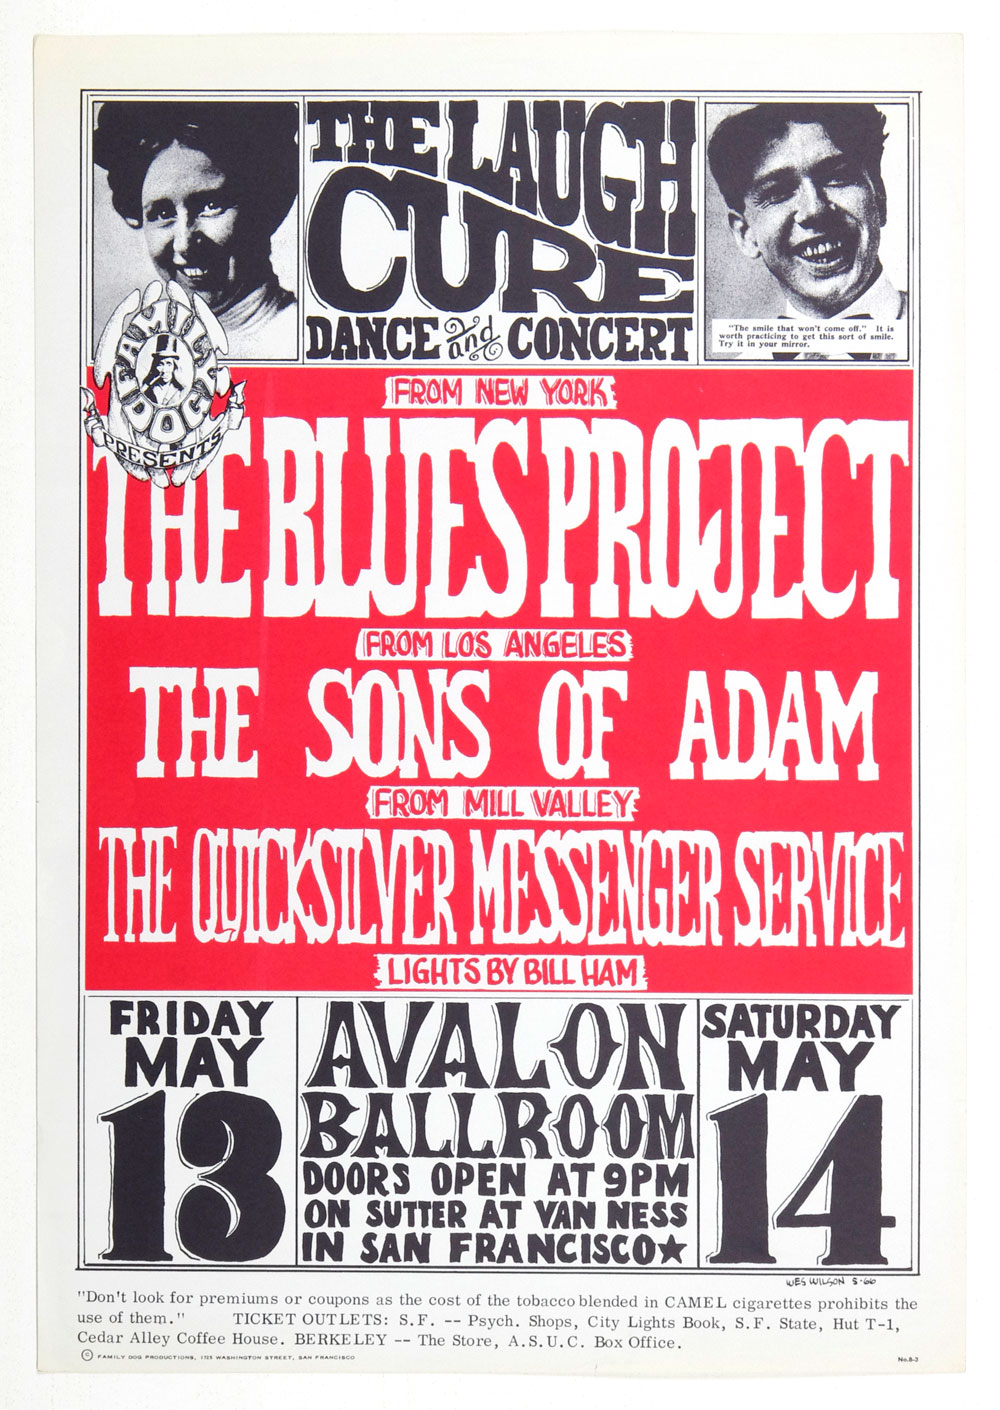 Family Dog 8 Poster Laugh Cure 1966 May 13 Quicksilver Messenger Service